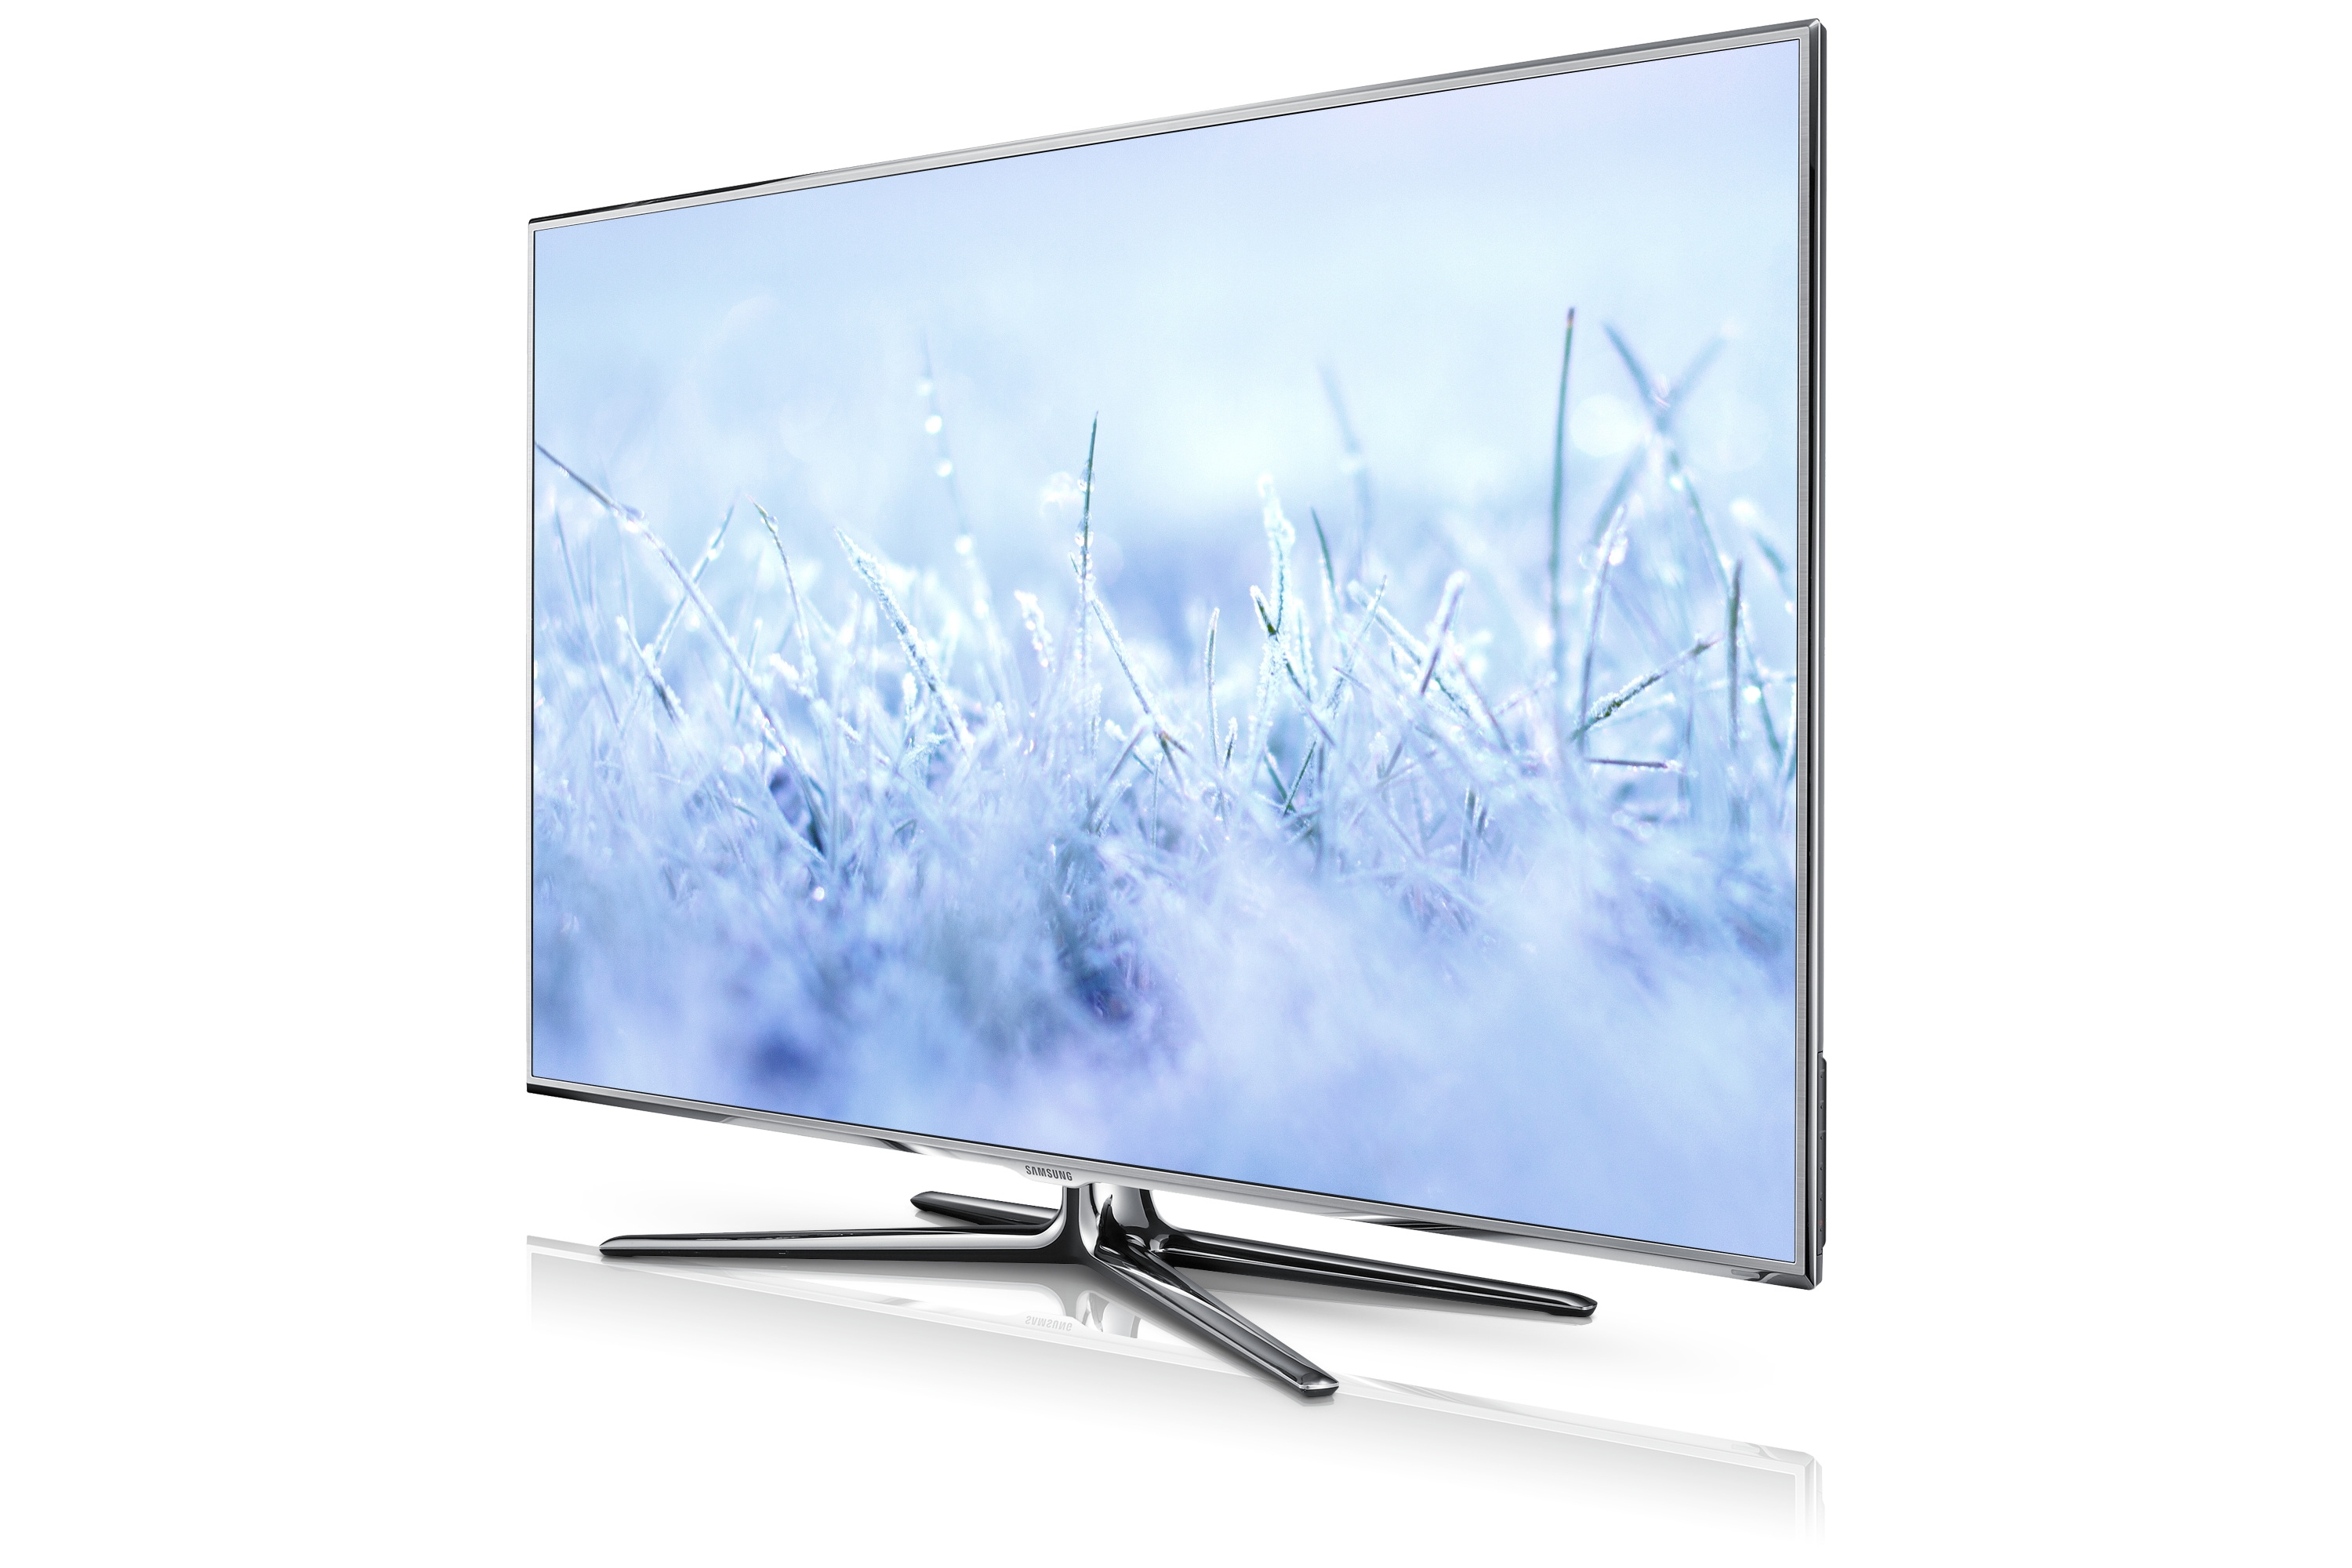 46, UE46D8000WXZF, série 8, SMART TV, 3D, FULL HD, LED TV